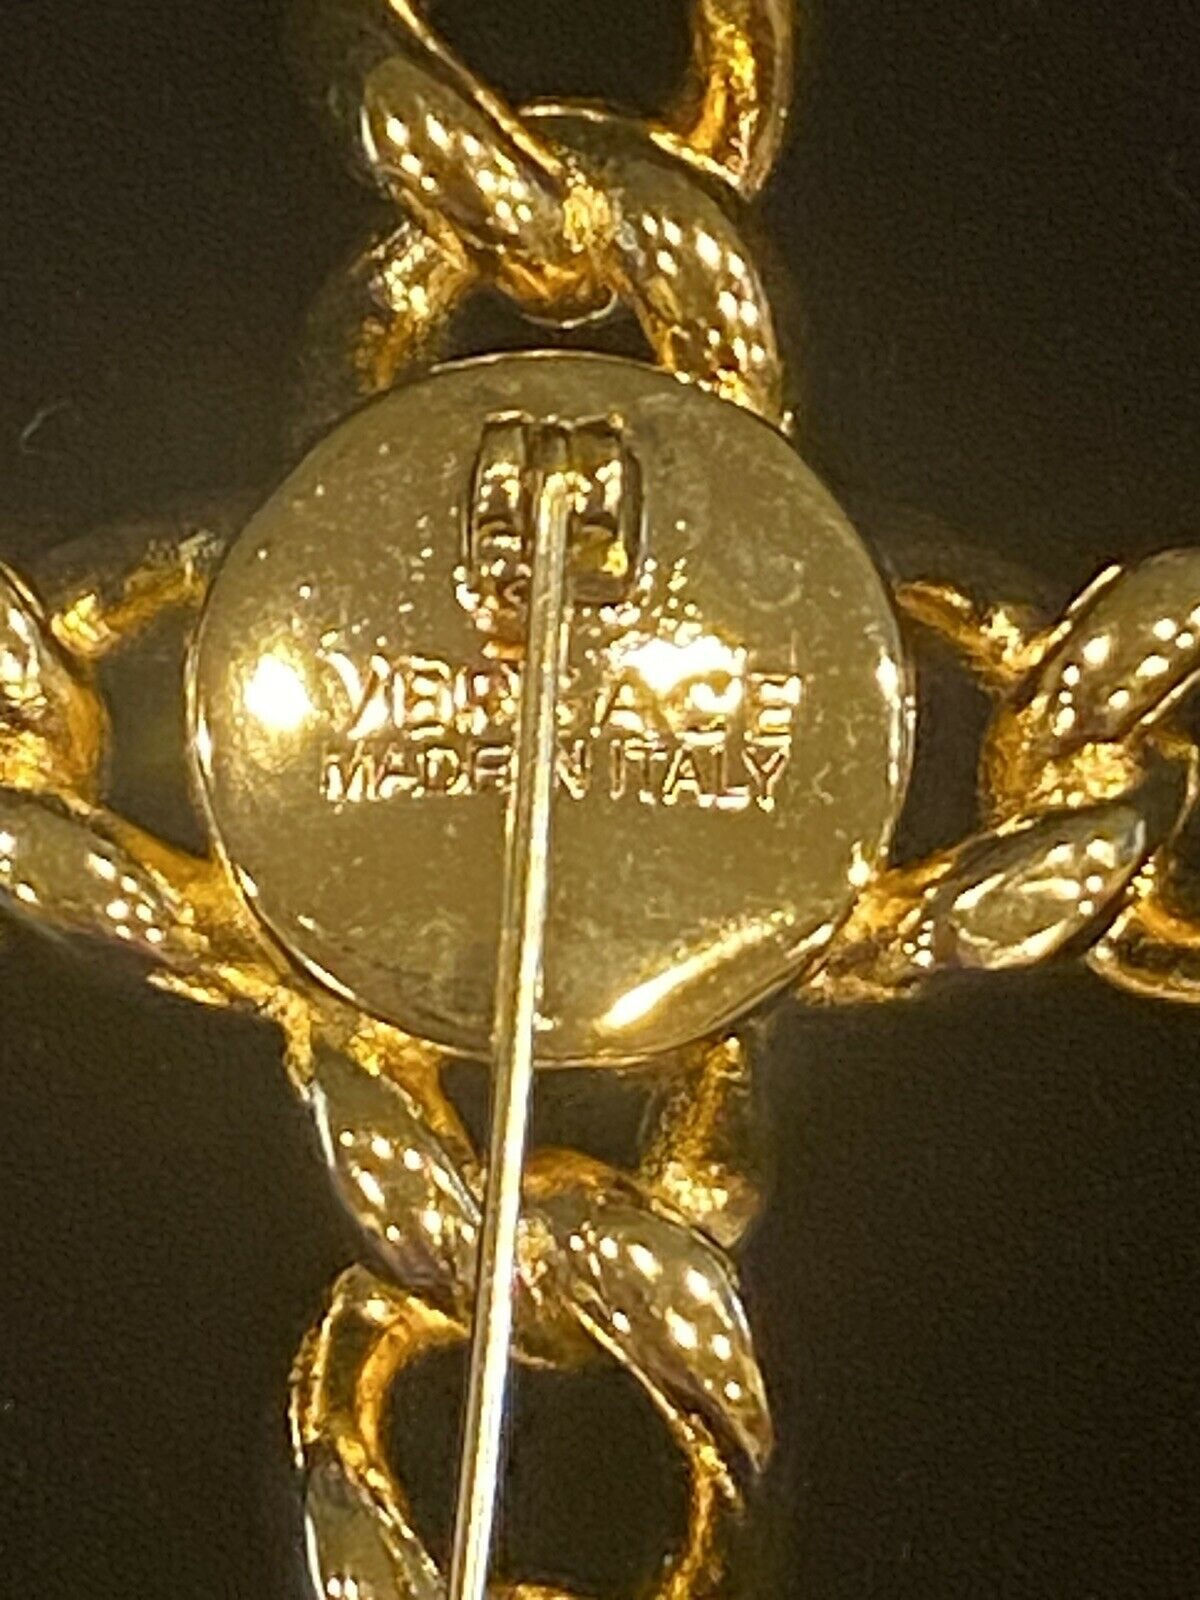 SIGNED VINTAGE GOLD PLATED GIANNI VERSACE CRYSTAL… - image 3